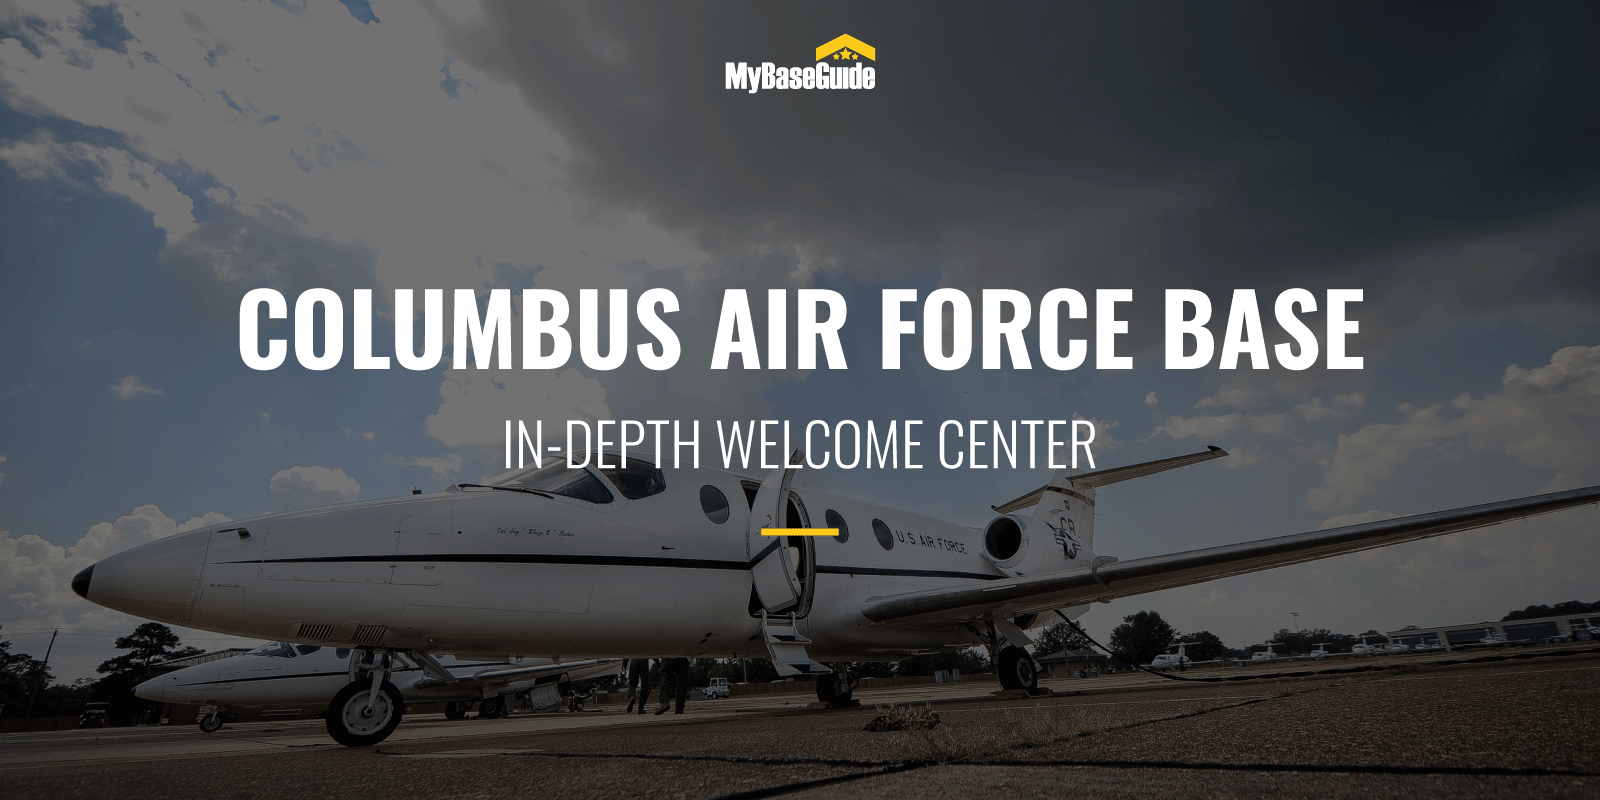 Columbus Air Force Base: In-Depth Welcome Center